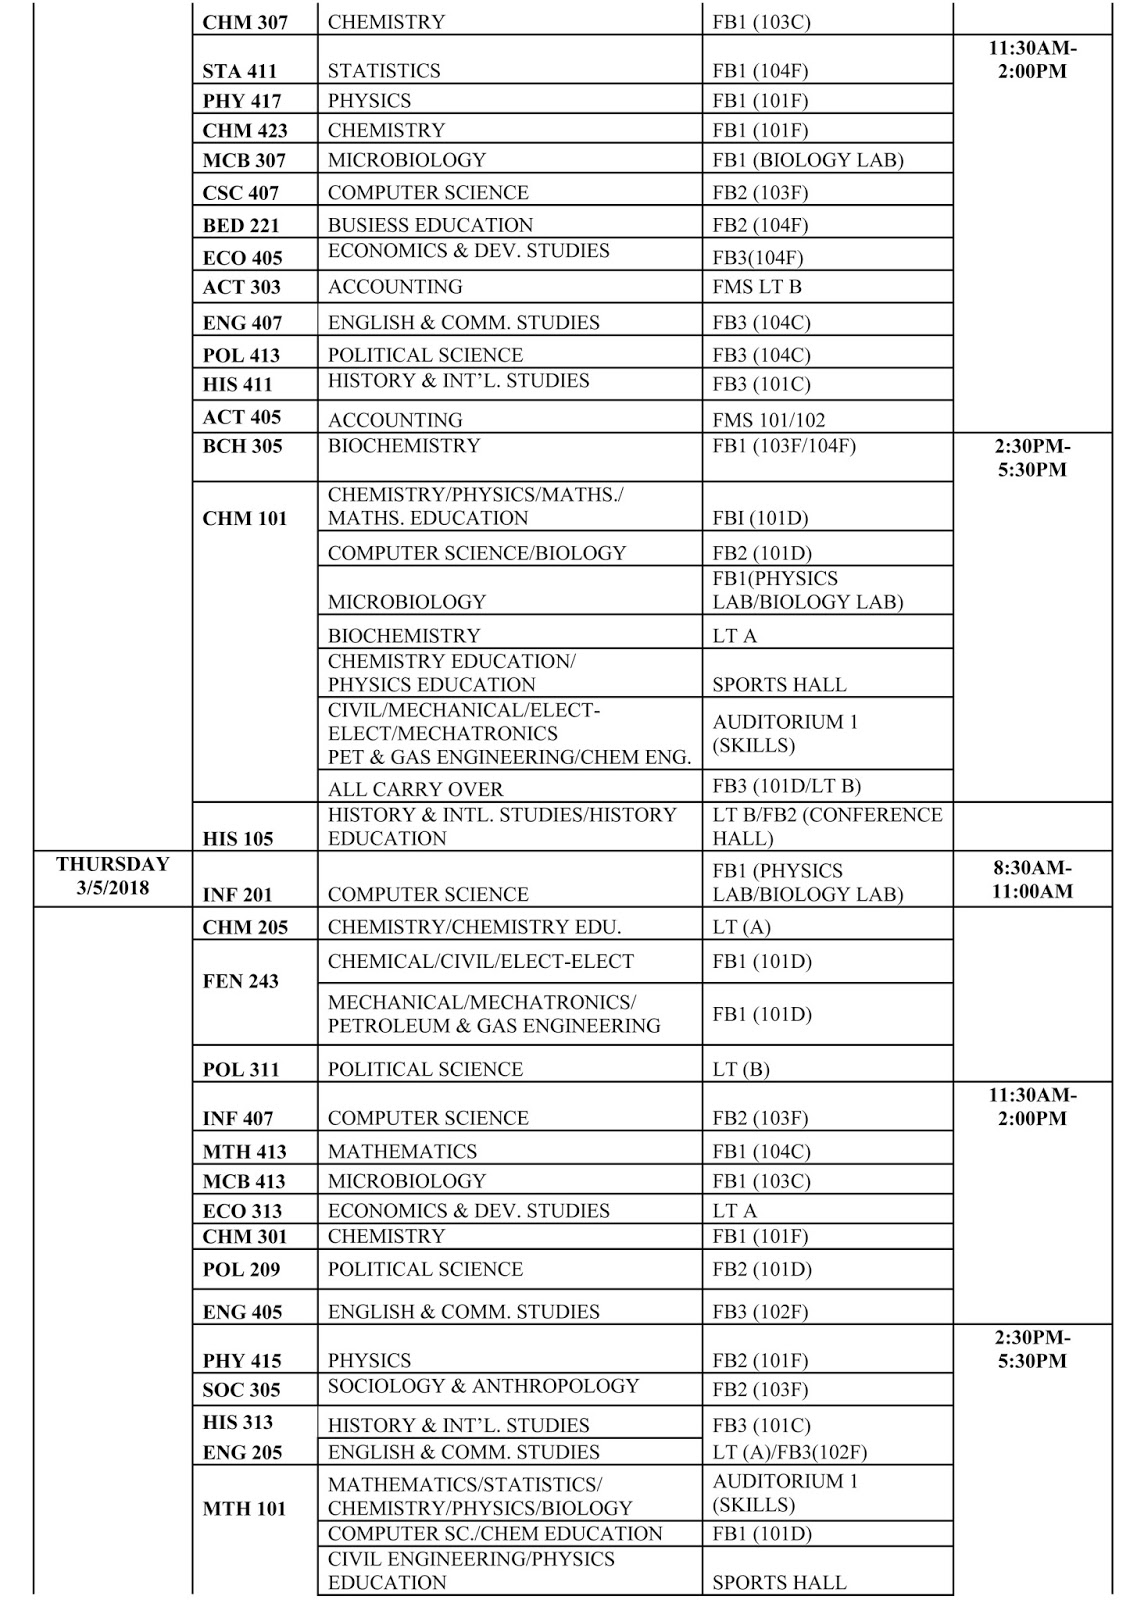 FUOTUOKE Examination Timetable for 1st Semester 2017/2018